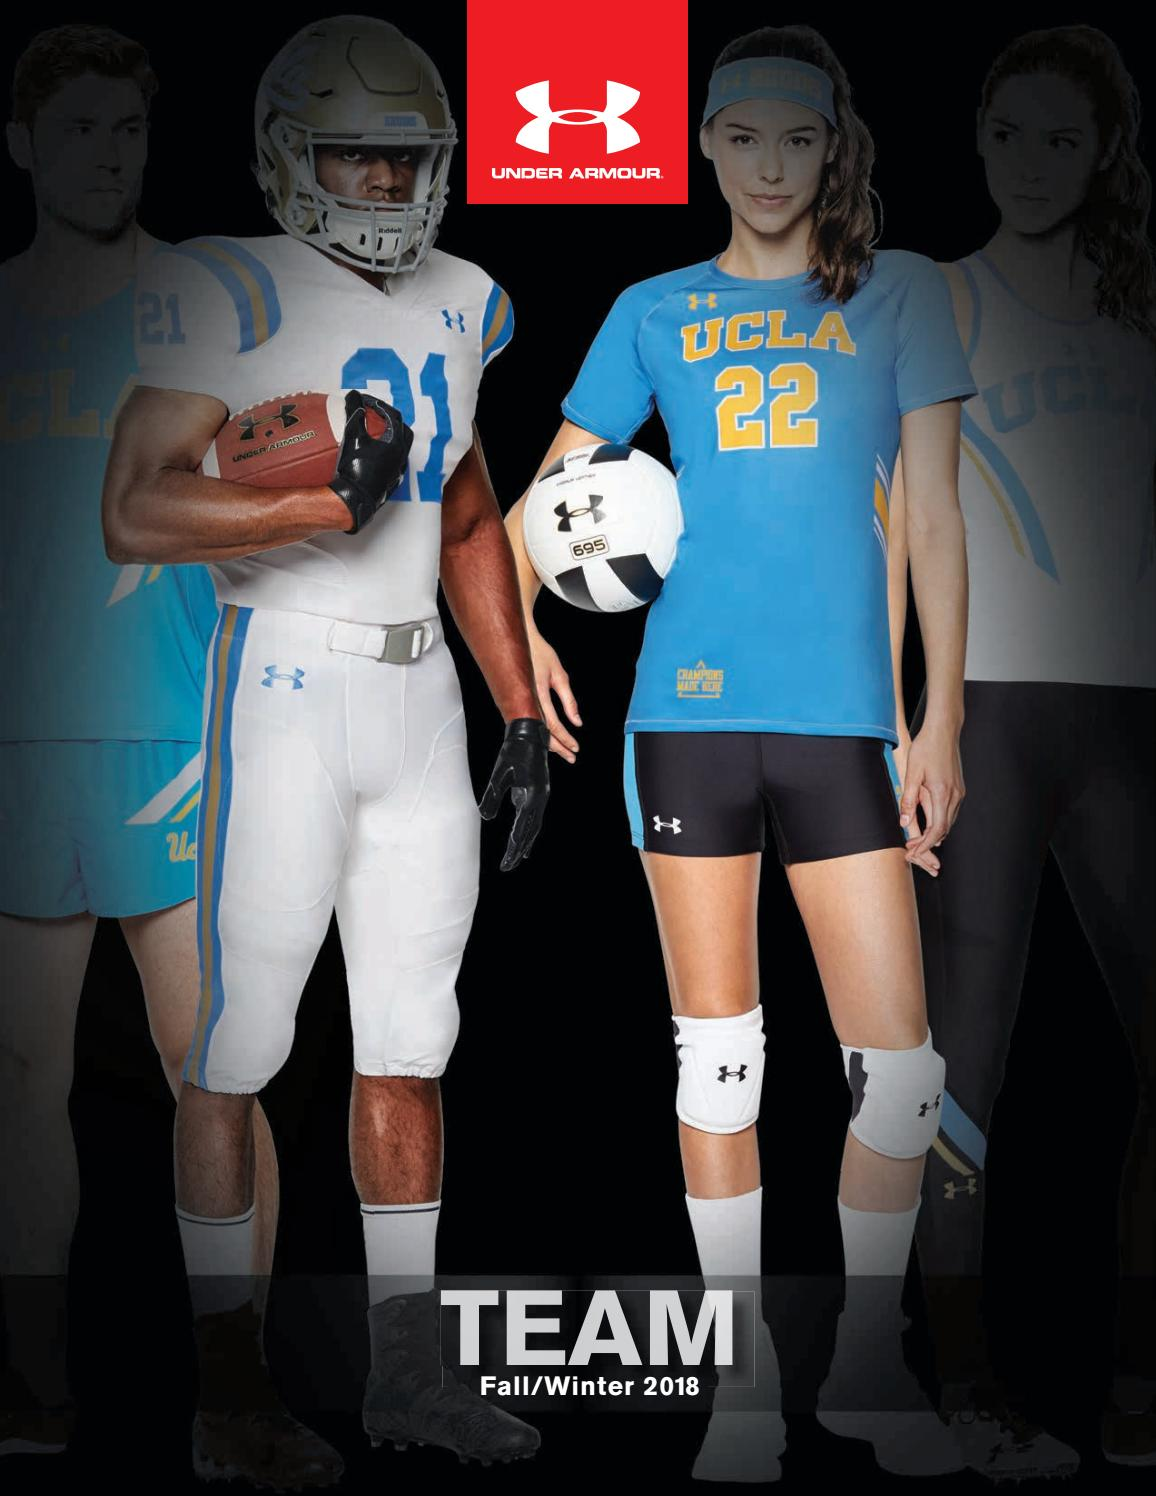 f5809904e4f Under Armour Fall/Winter 2018 by Team Connection - issuu